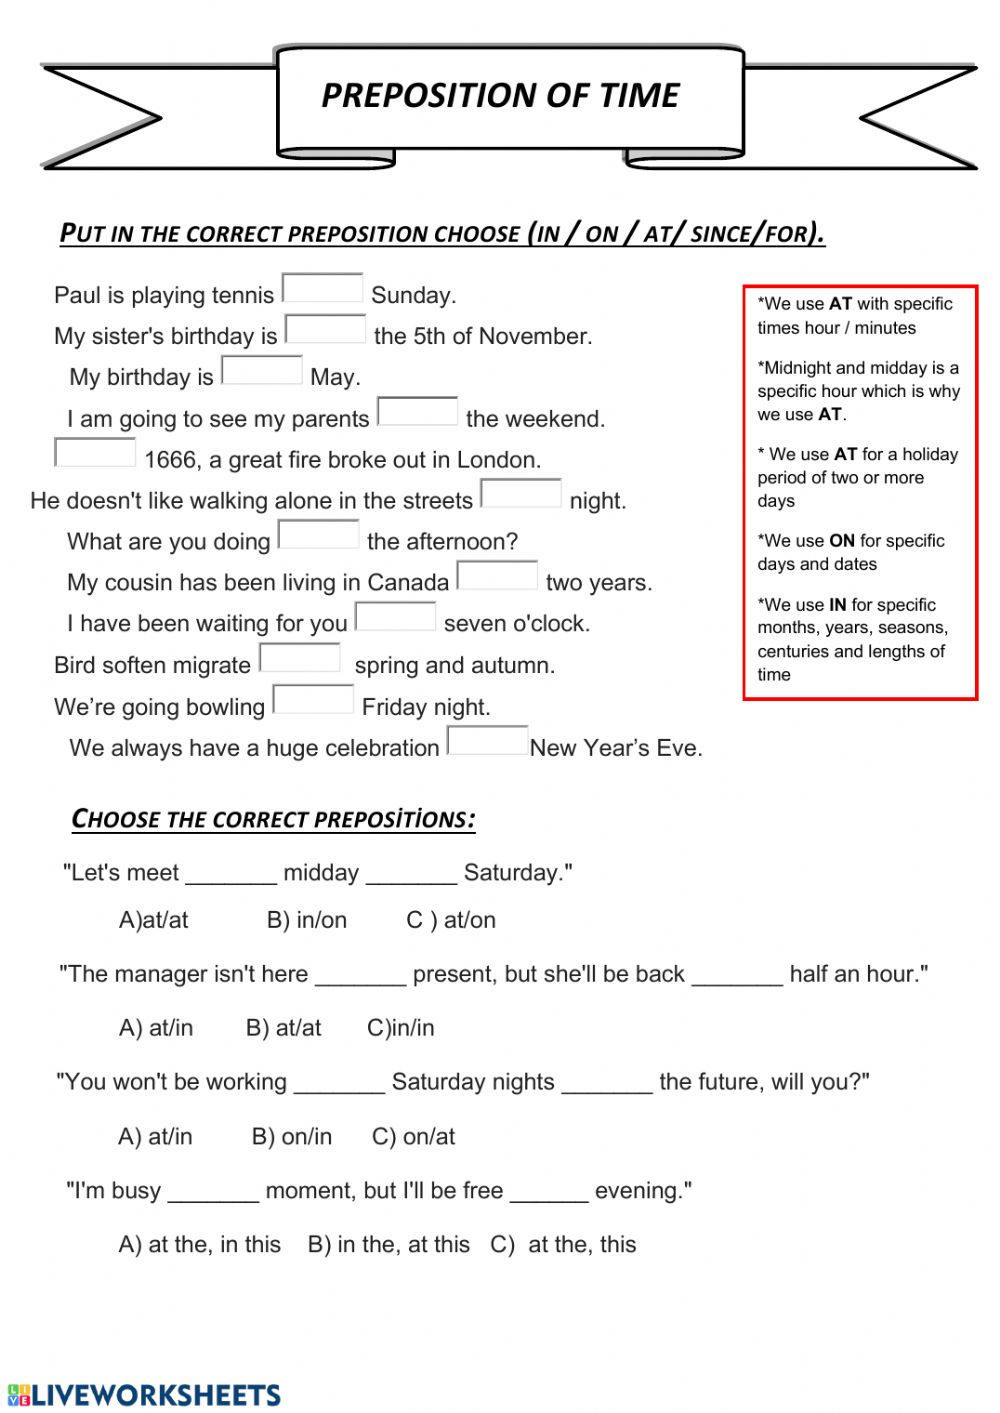 medium resolution of Preposition of time worksheet